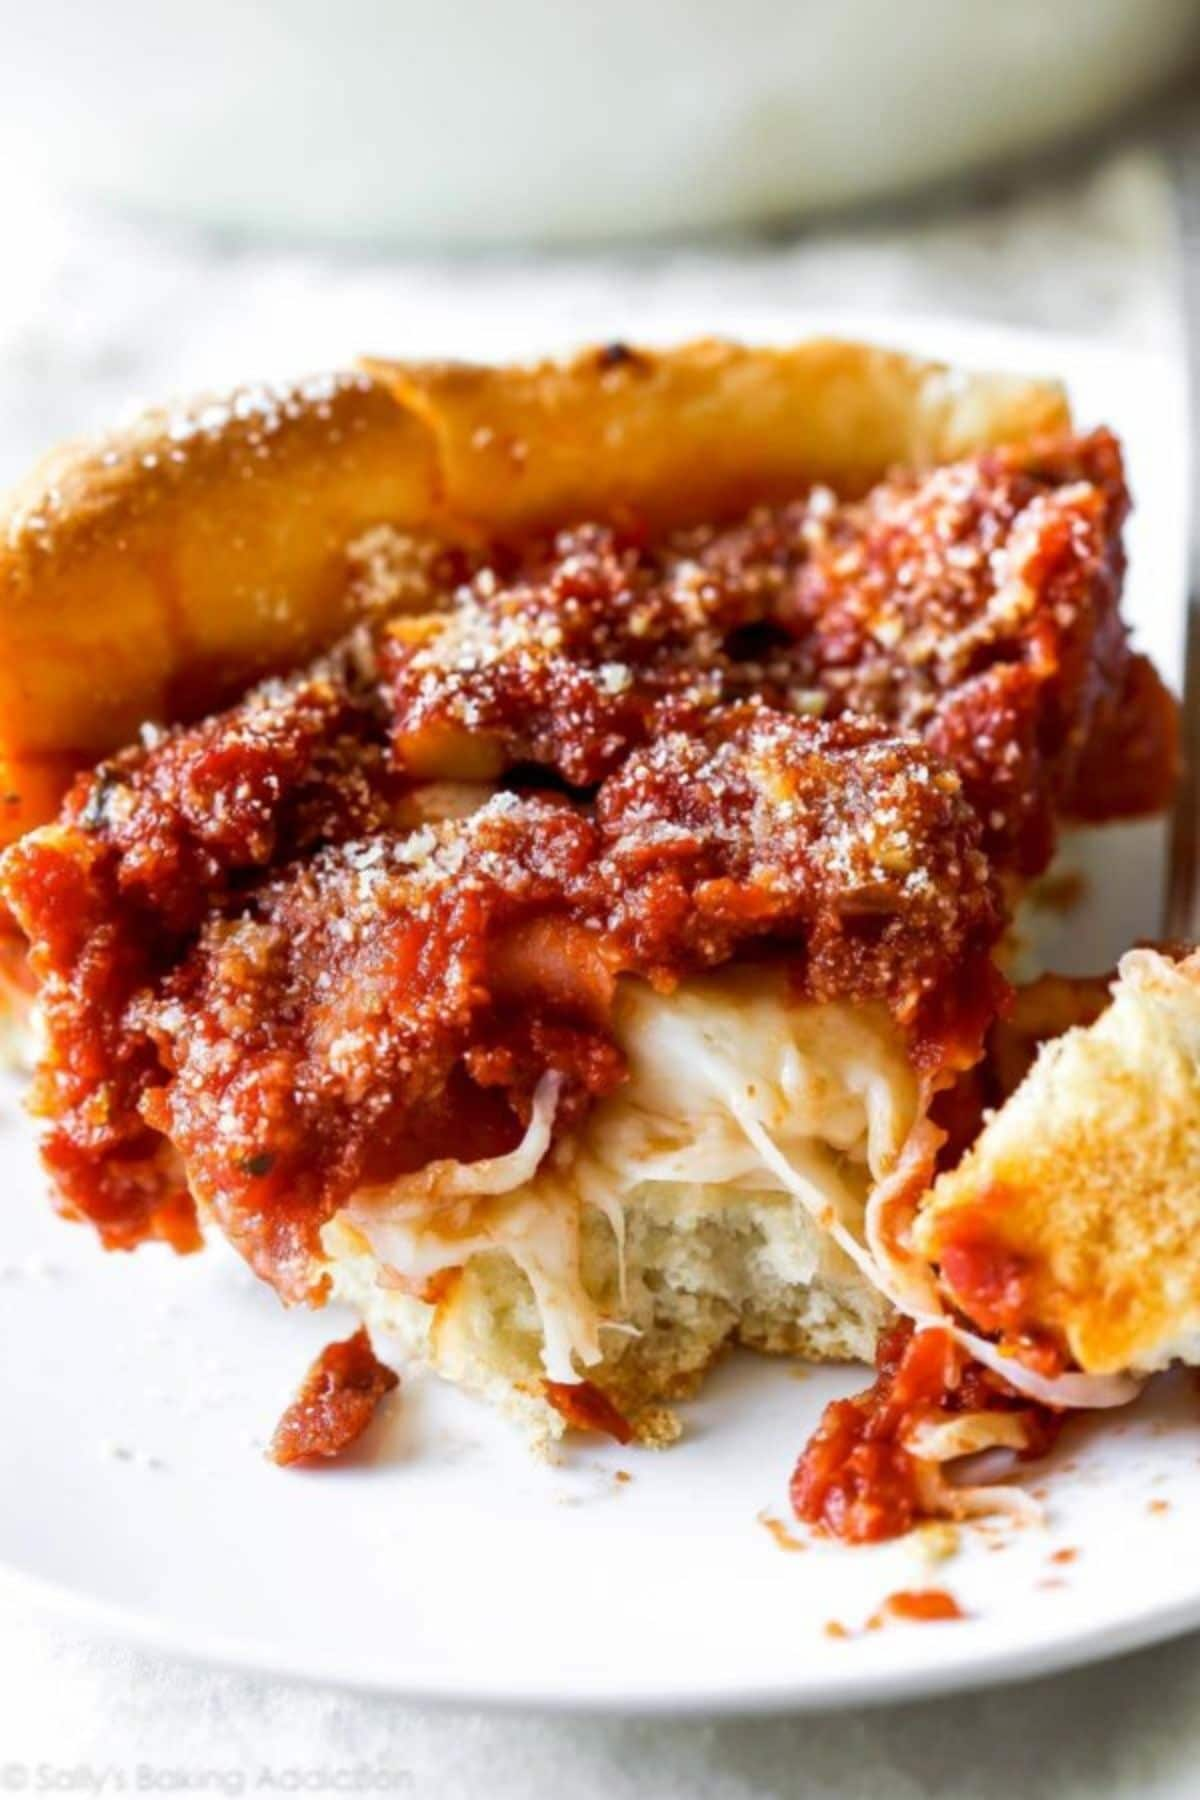 cheese pizza with tomato sauce on top on plate